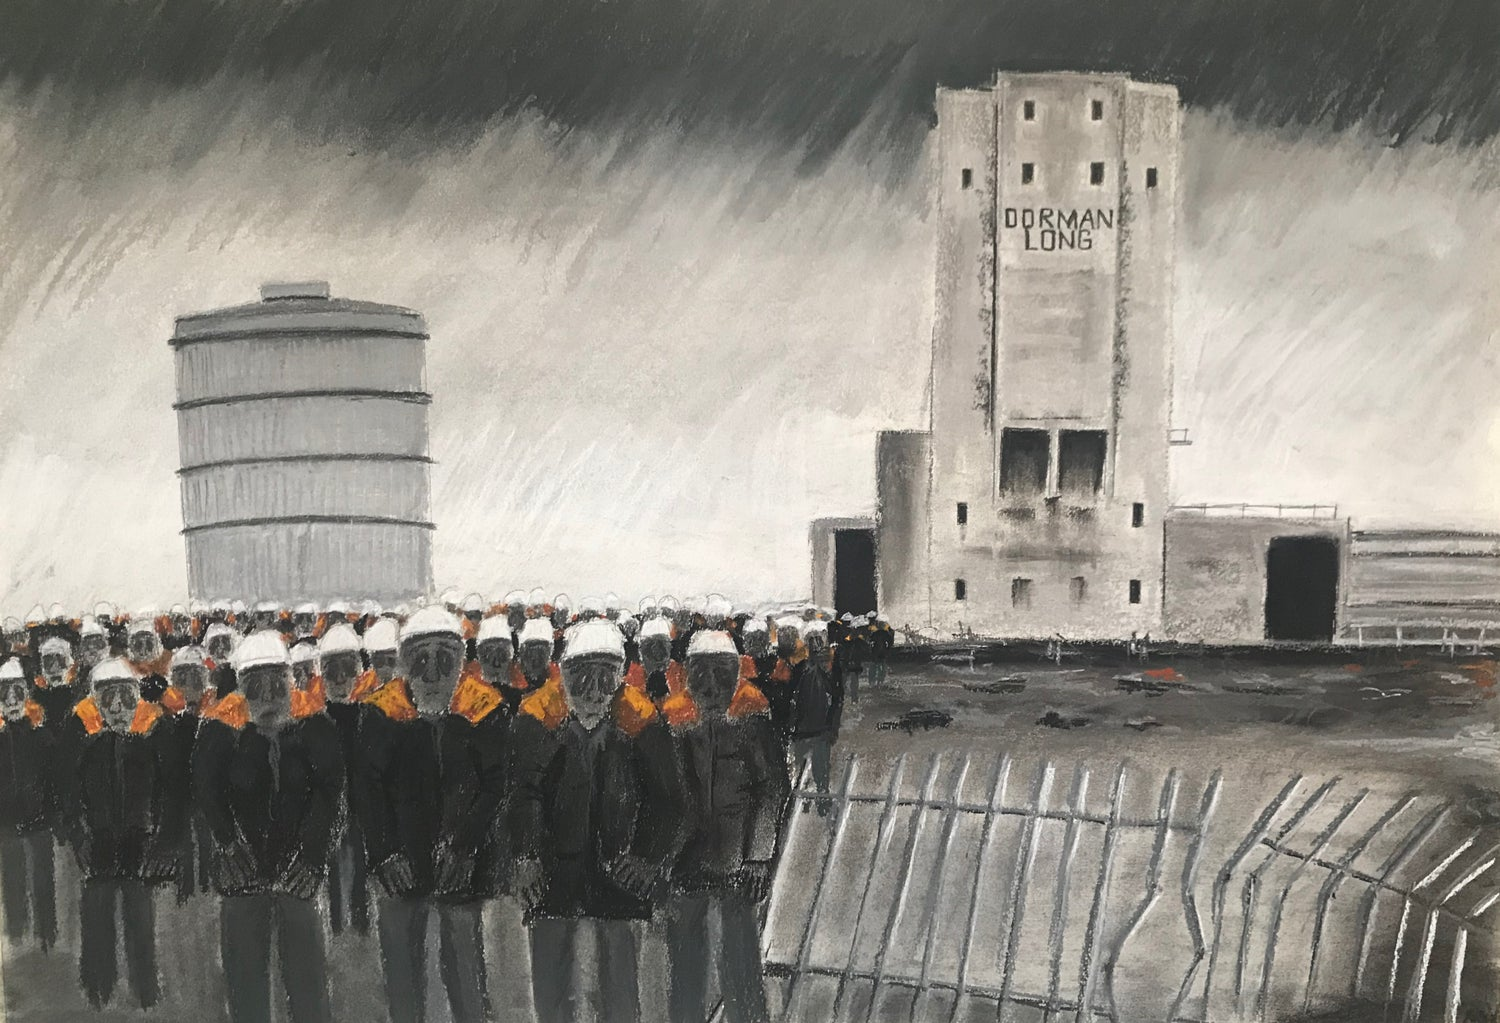 Image of Ghosts of the Tees - Coke ovens (Giclee print)